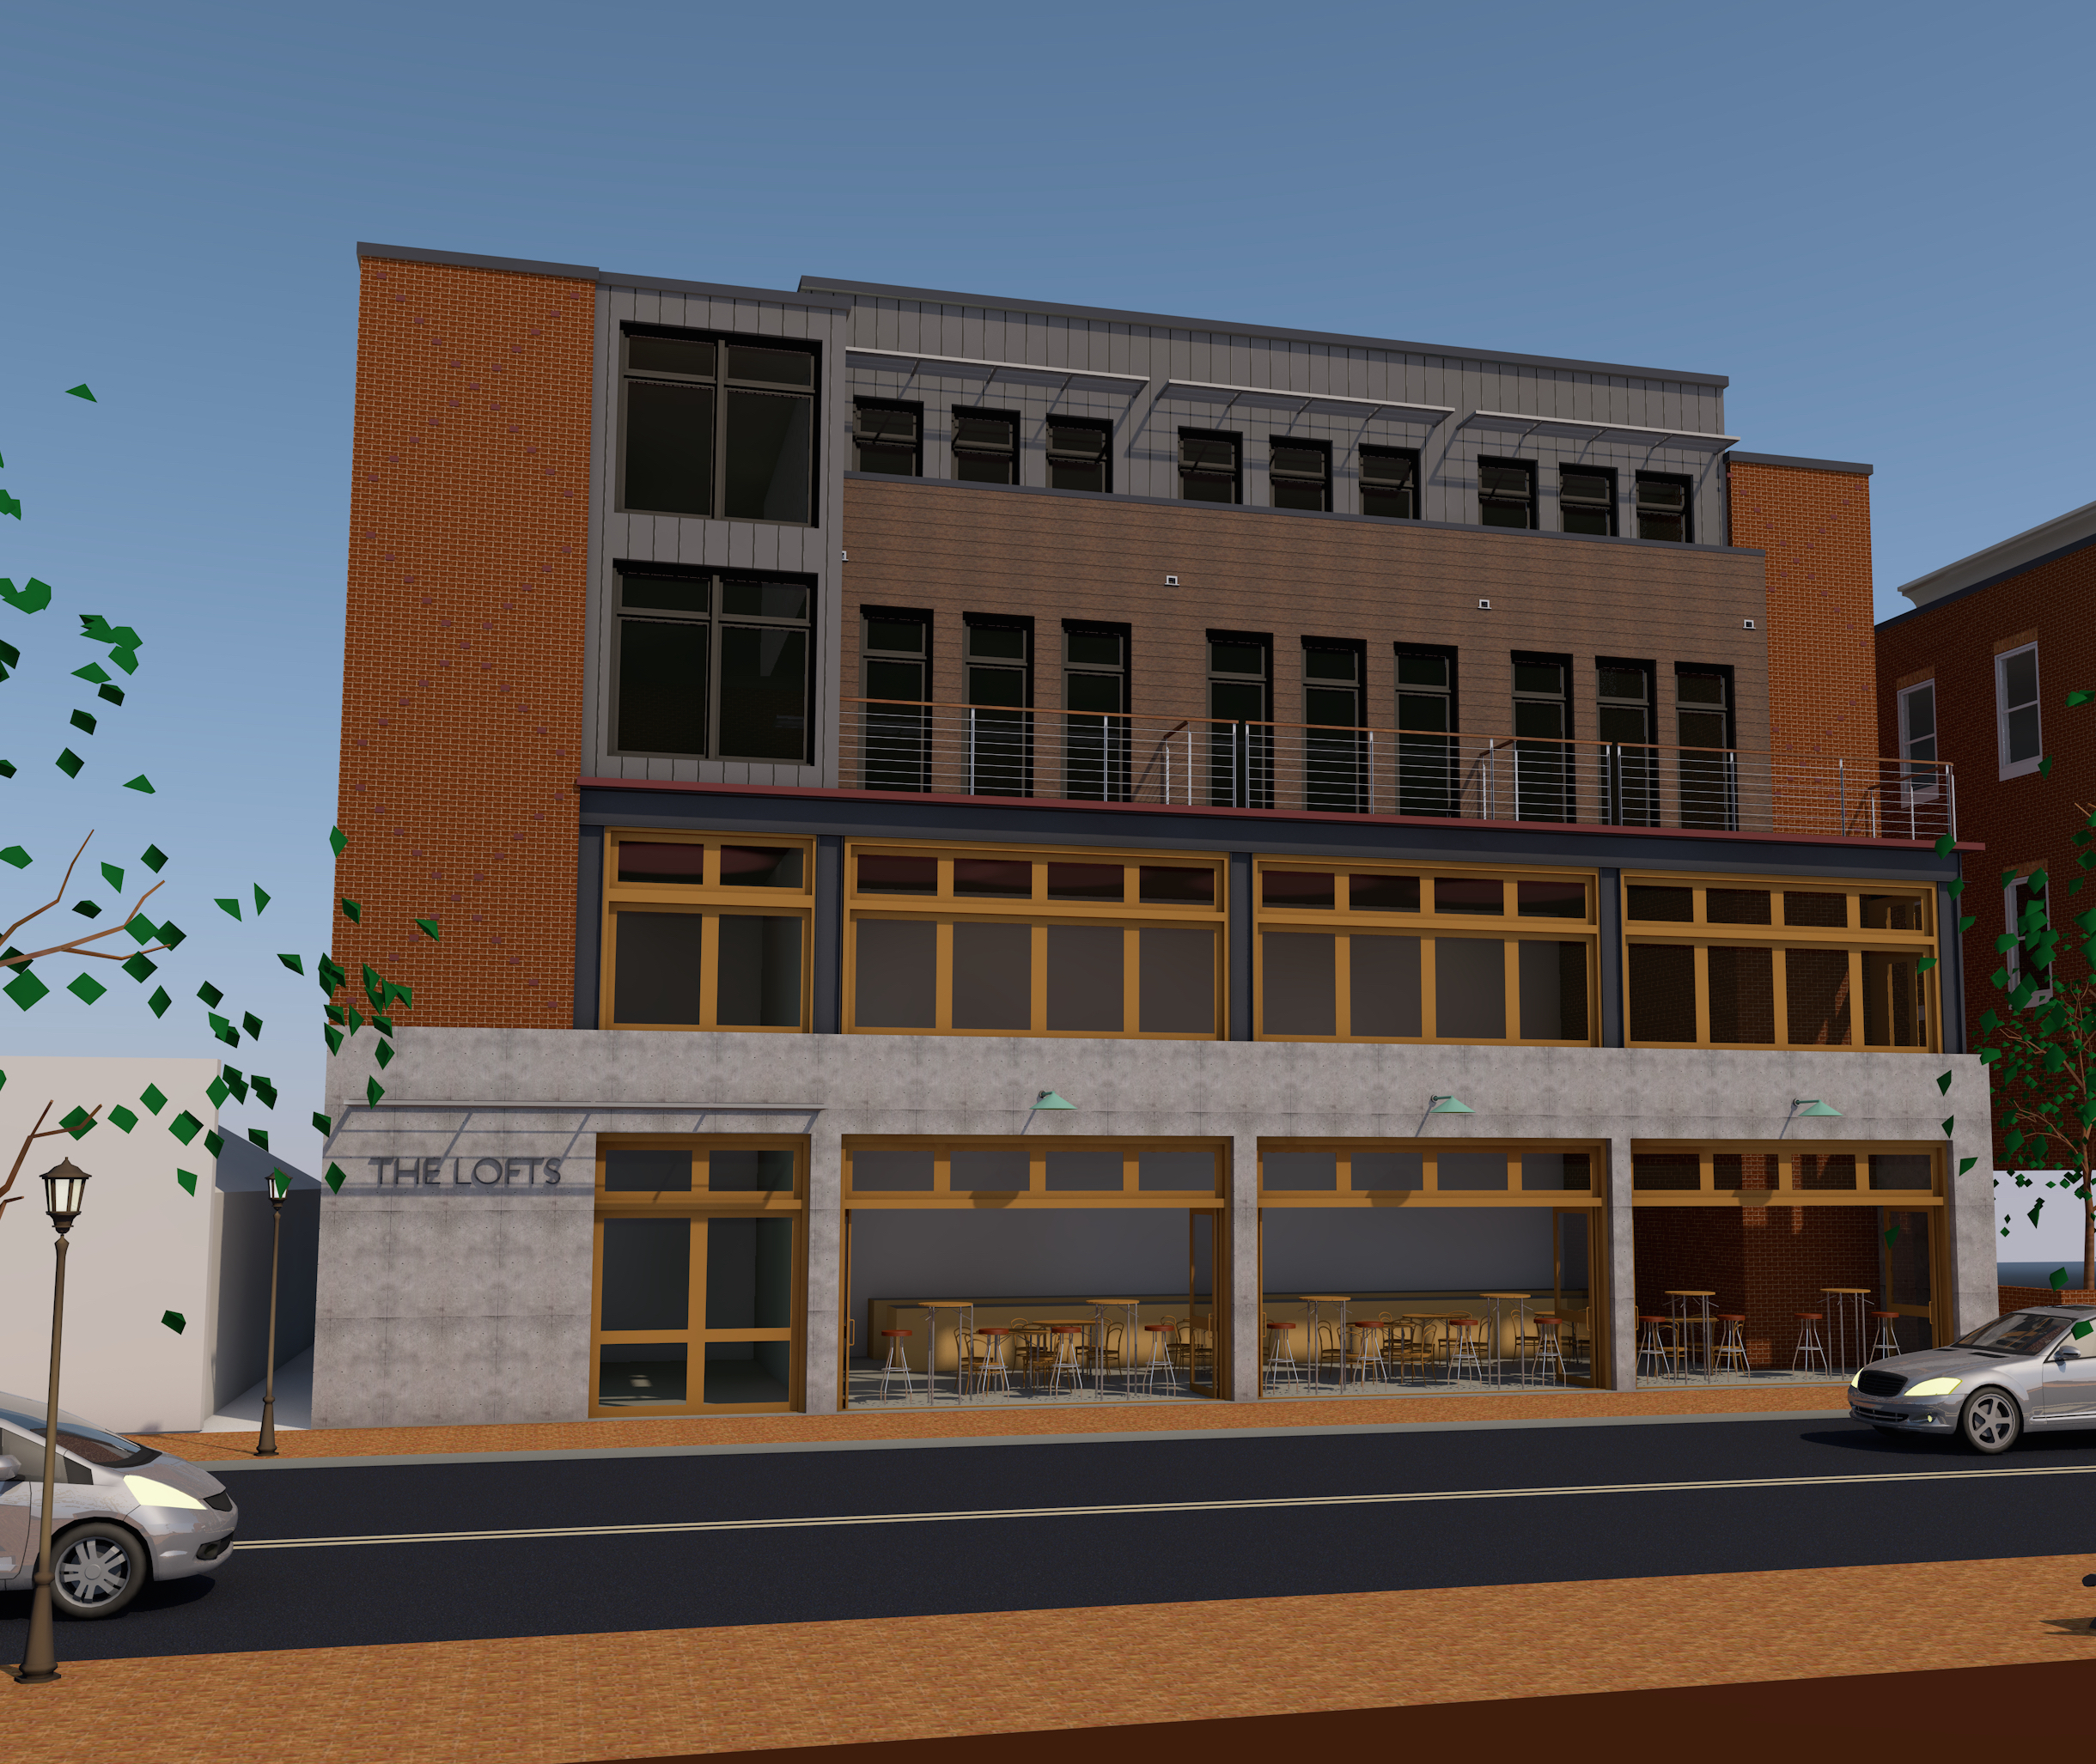 Mixed Use Commercial and Residential Building. A joint venture in association with Fred Sieracki Architects.